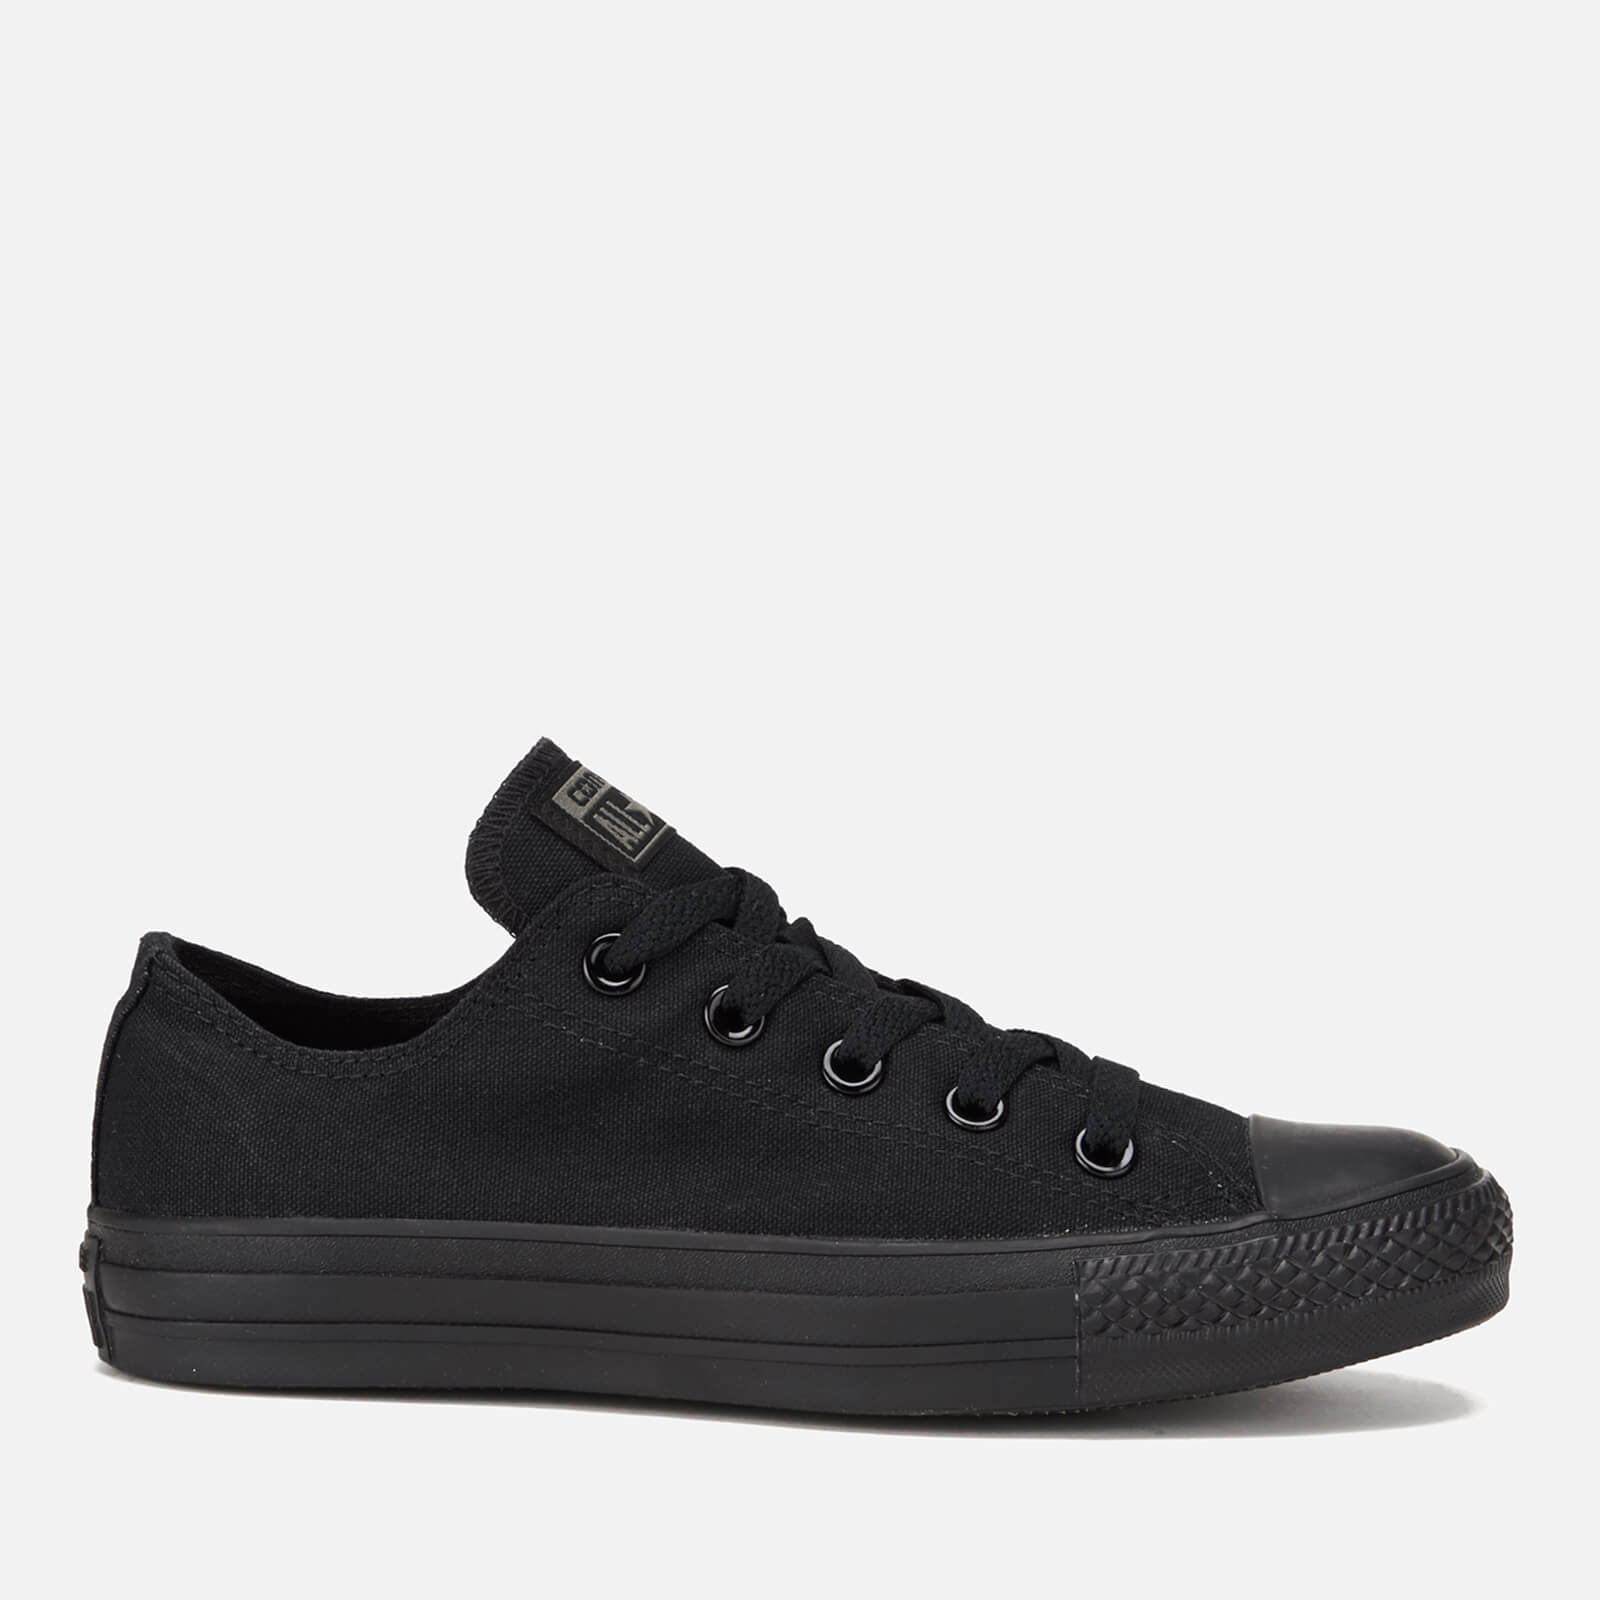 Converse Chuck Taylor All Star Ox Canvas Trainers Black Monochrome Uk 4